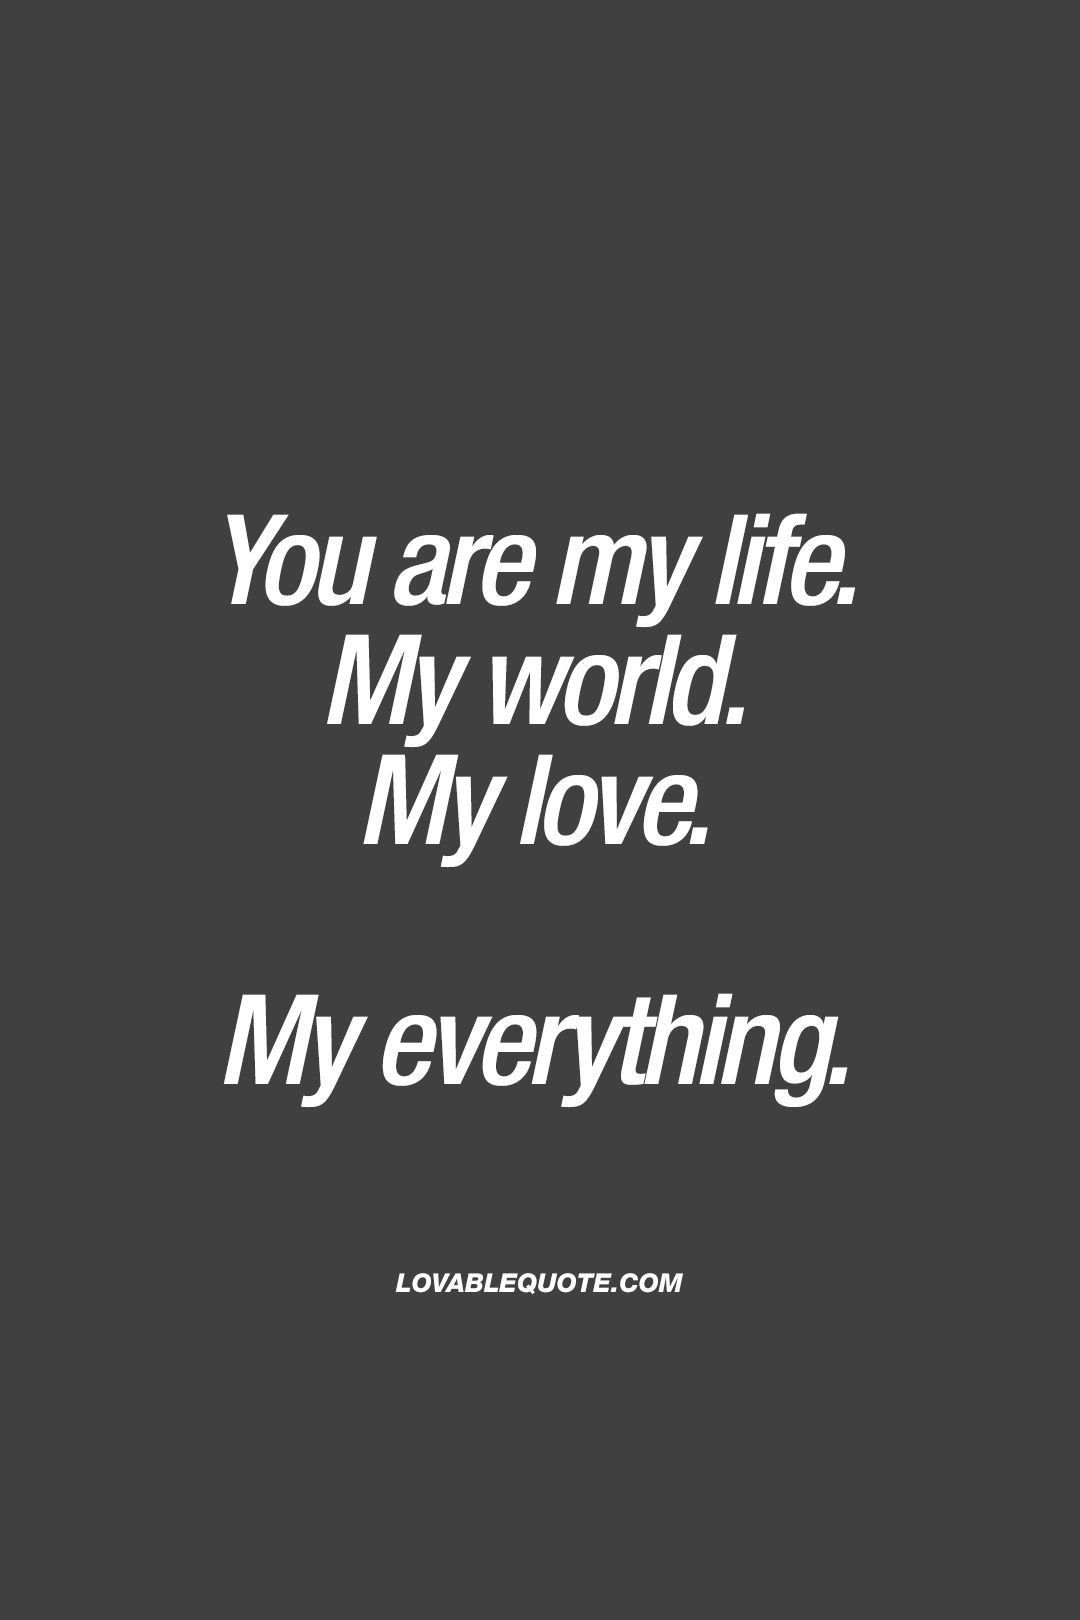 I love You.#inmy❤  My everything quotes, You are my